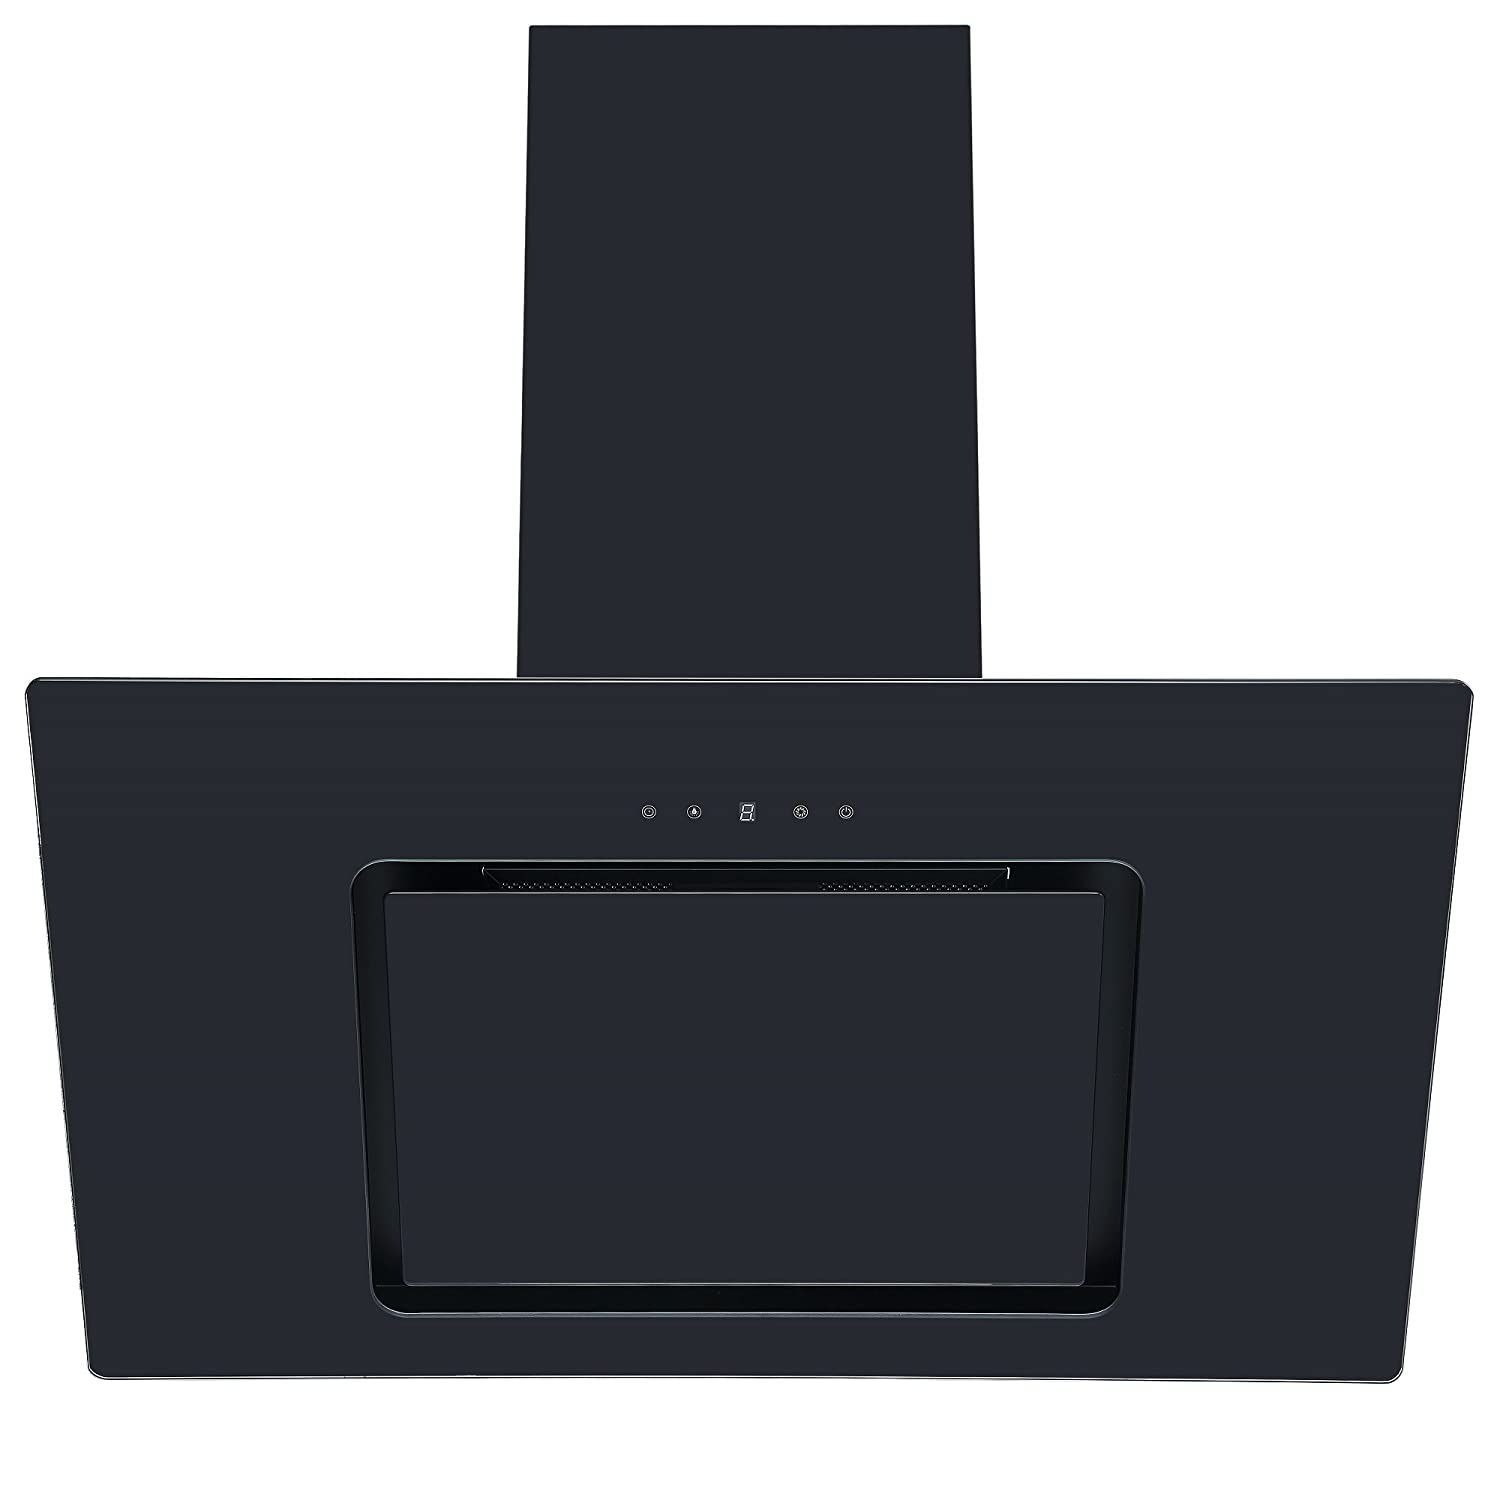 Cookology VER805BK 80cm Black Angled Glass Chimney Cooker Hood | Touch Controls [Energy Class C]